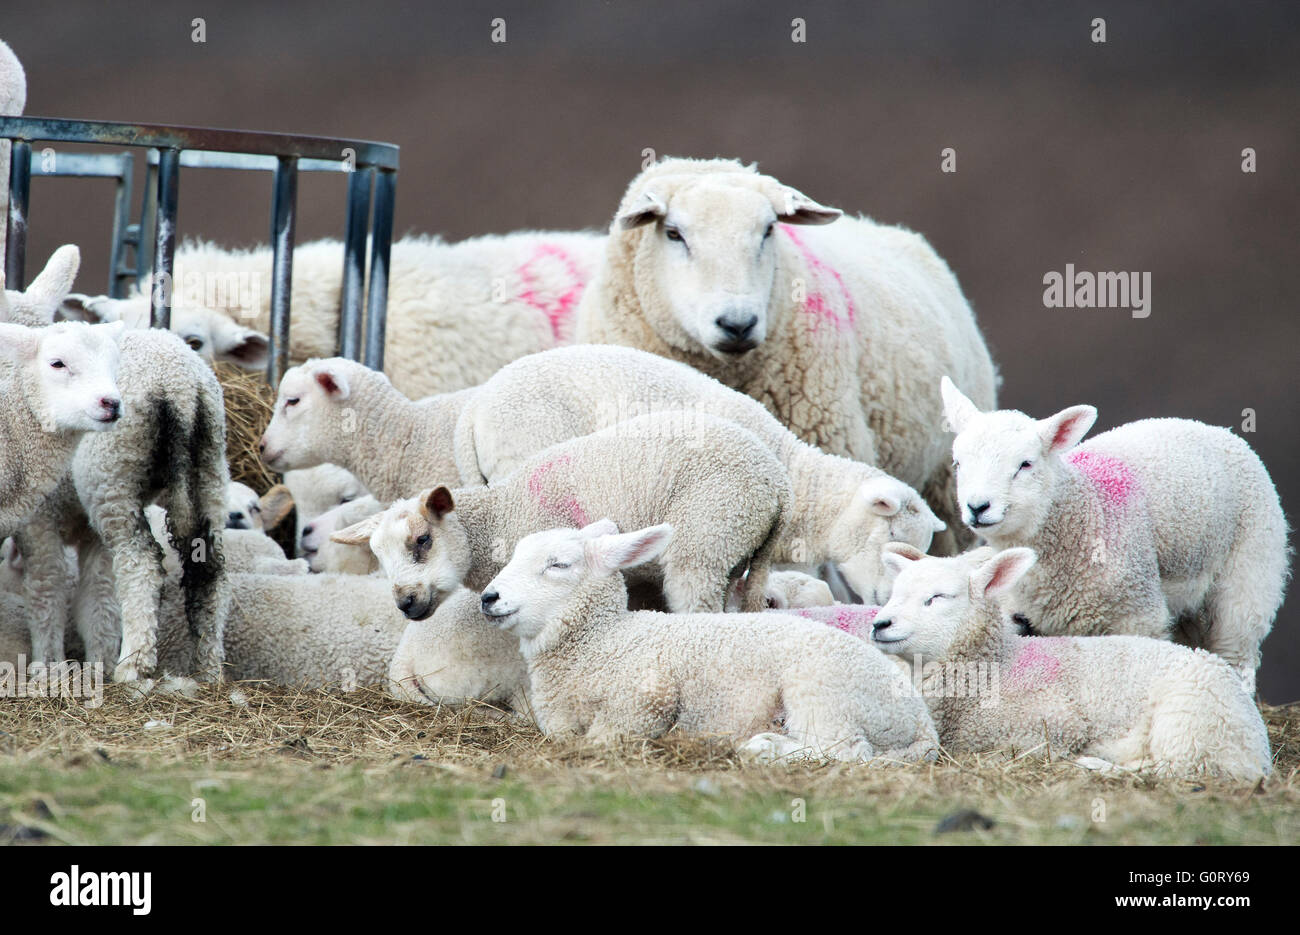 27/04/2016, Ewes and lambs huddle together to keep warm at Framside farm, Caithness, Scotland. - Stock Image